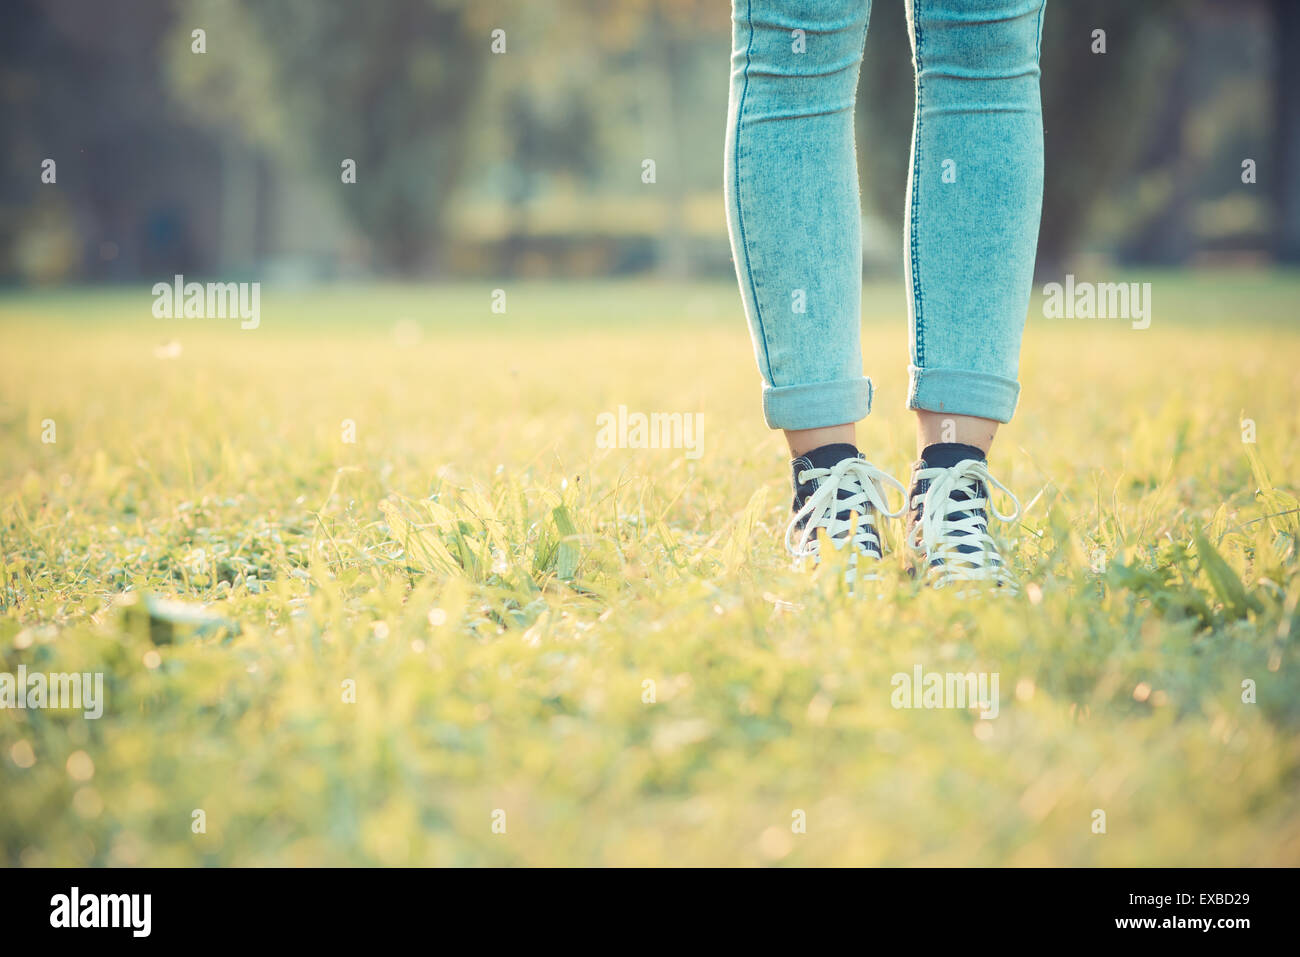 close up of legs woman with leggings and skeakers at the park on grass - Stock Image